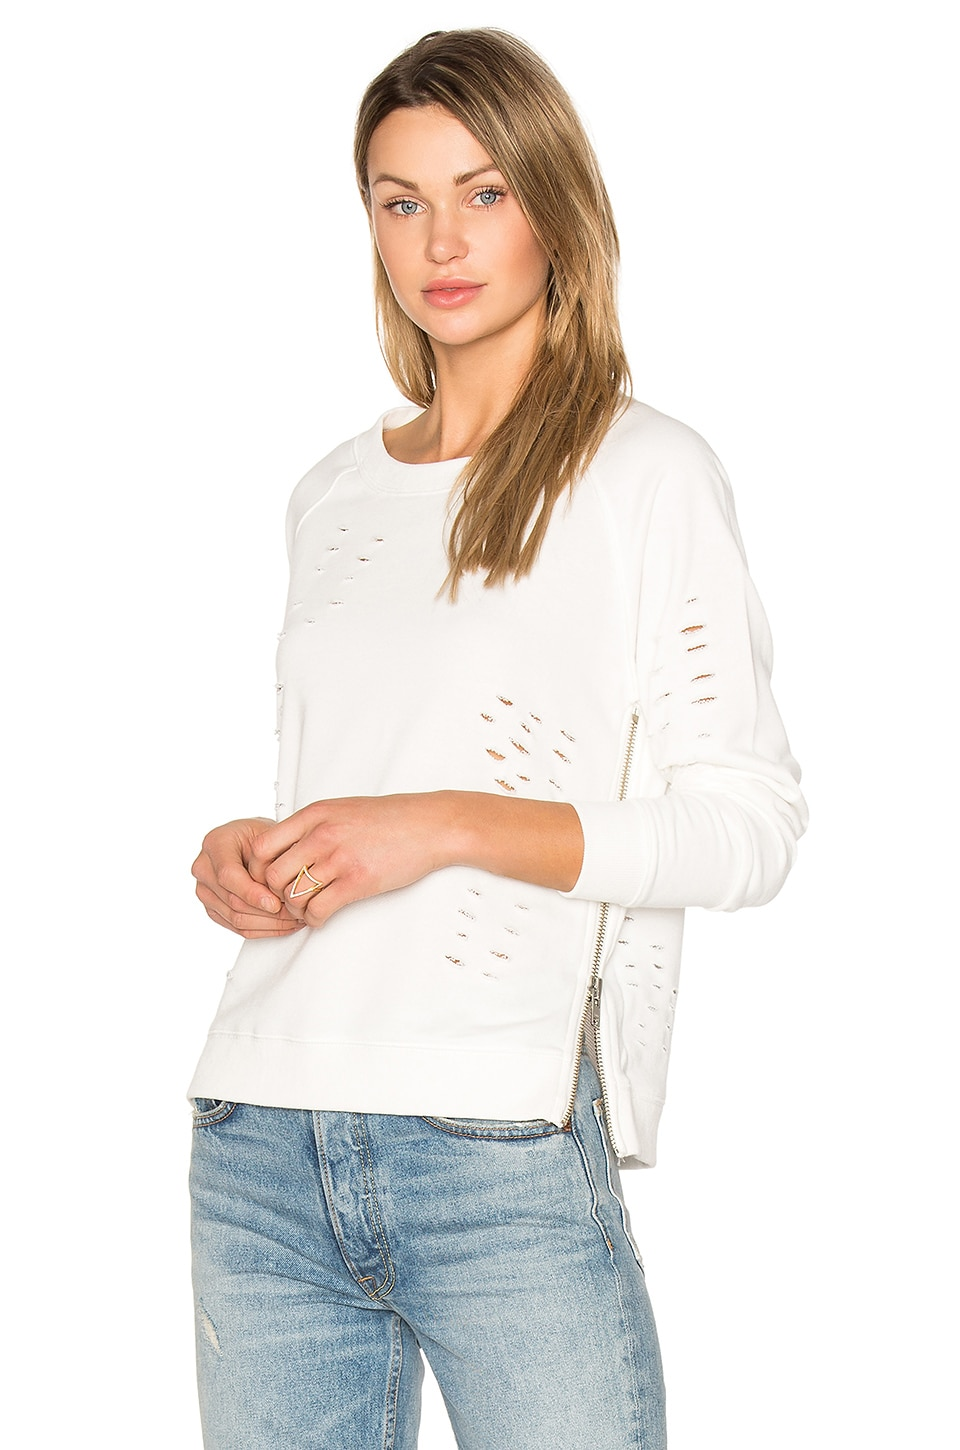 Central Park West Savannah Distressed Sweater in White